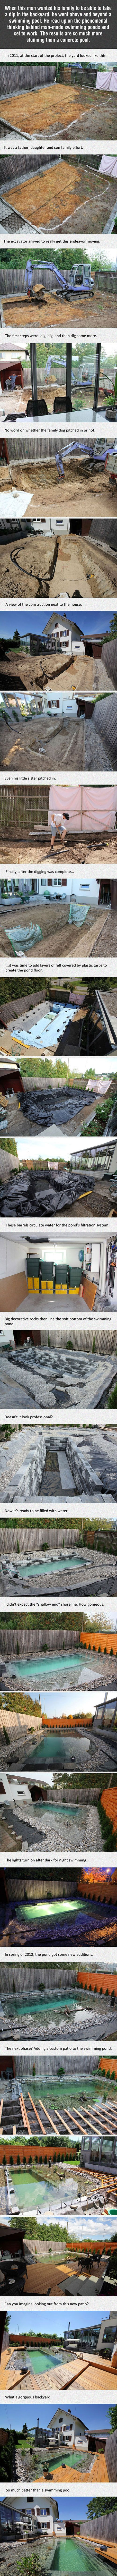 His idea for a backyard seems crazy at first. But after seeing the result? Absolutely genius.Now all he needs is some #mermaidtails #finfun #mermaids www.finfunmermaid.com